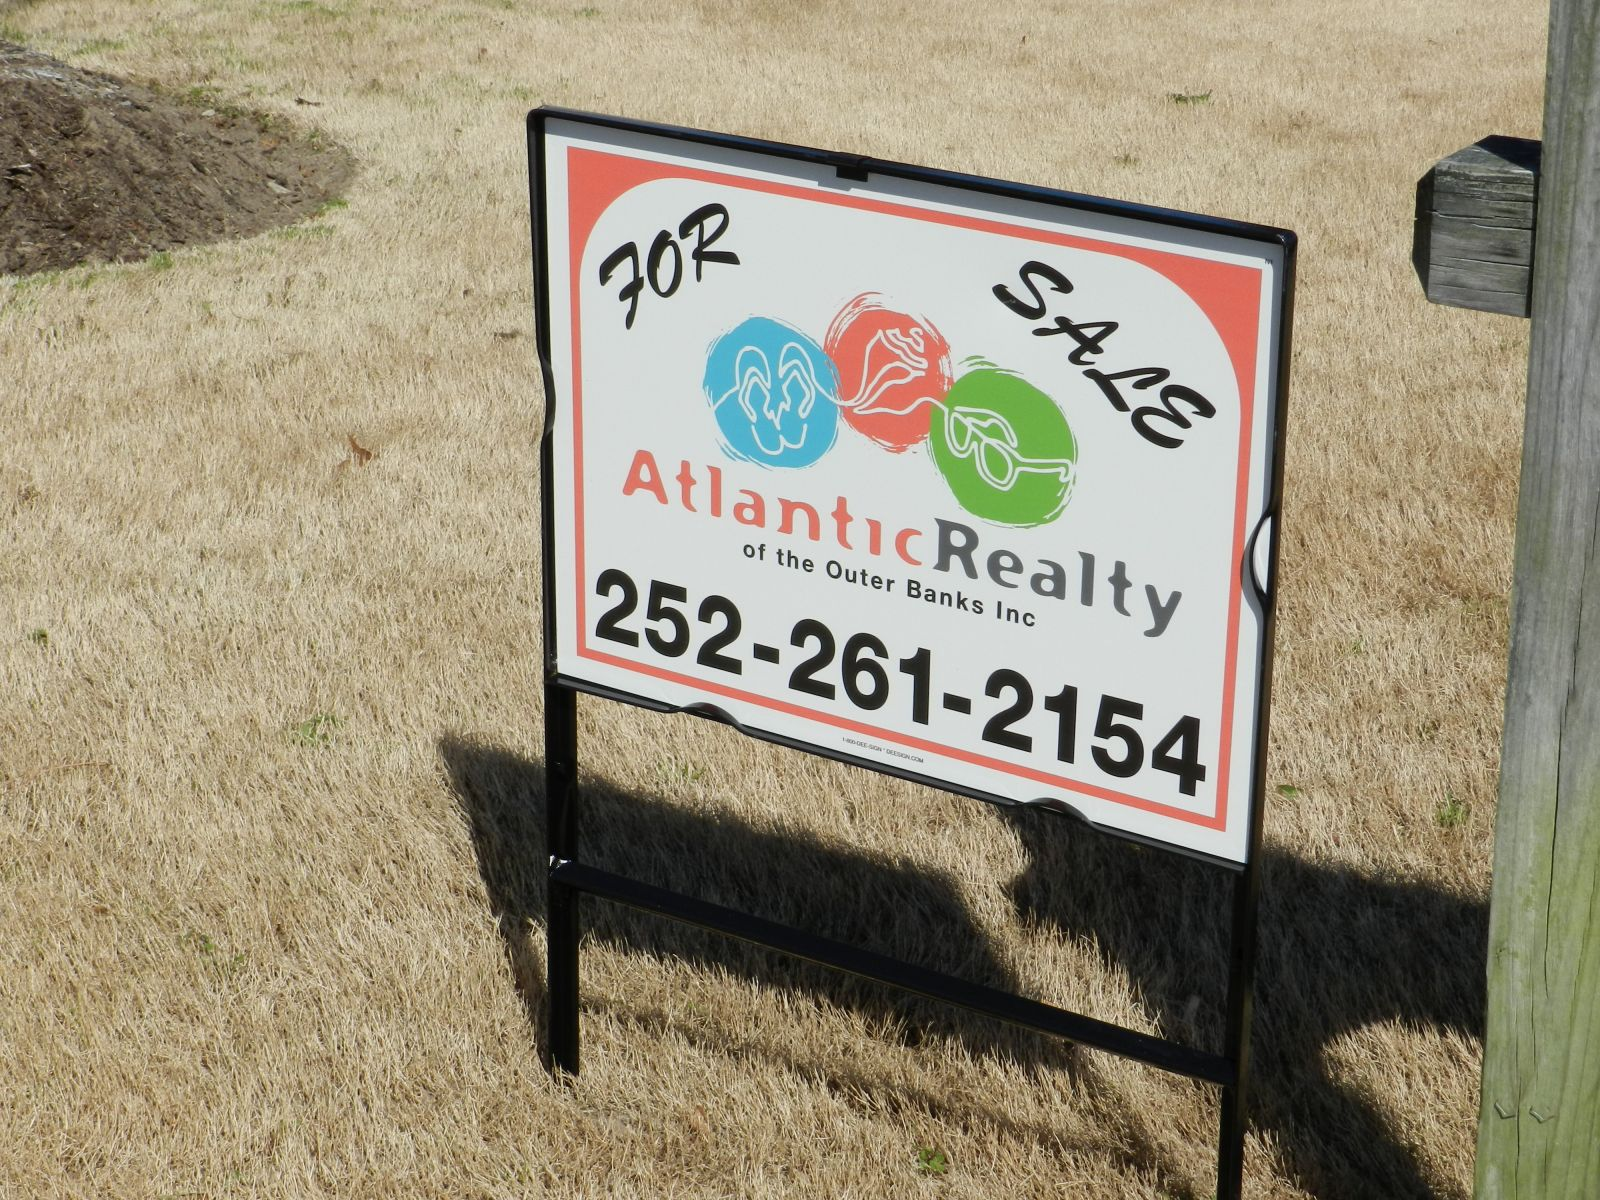 Atlantic Realty Real Estate Sales